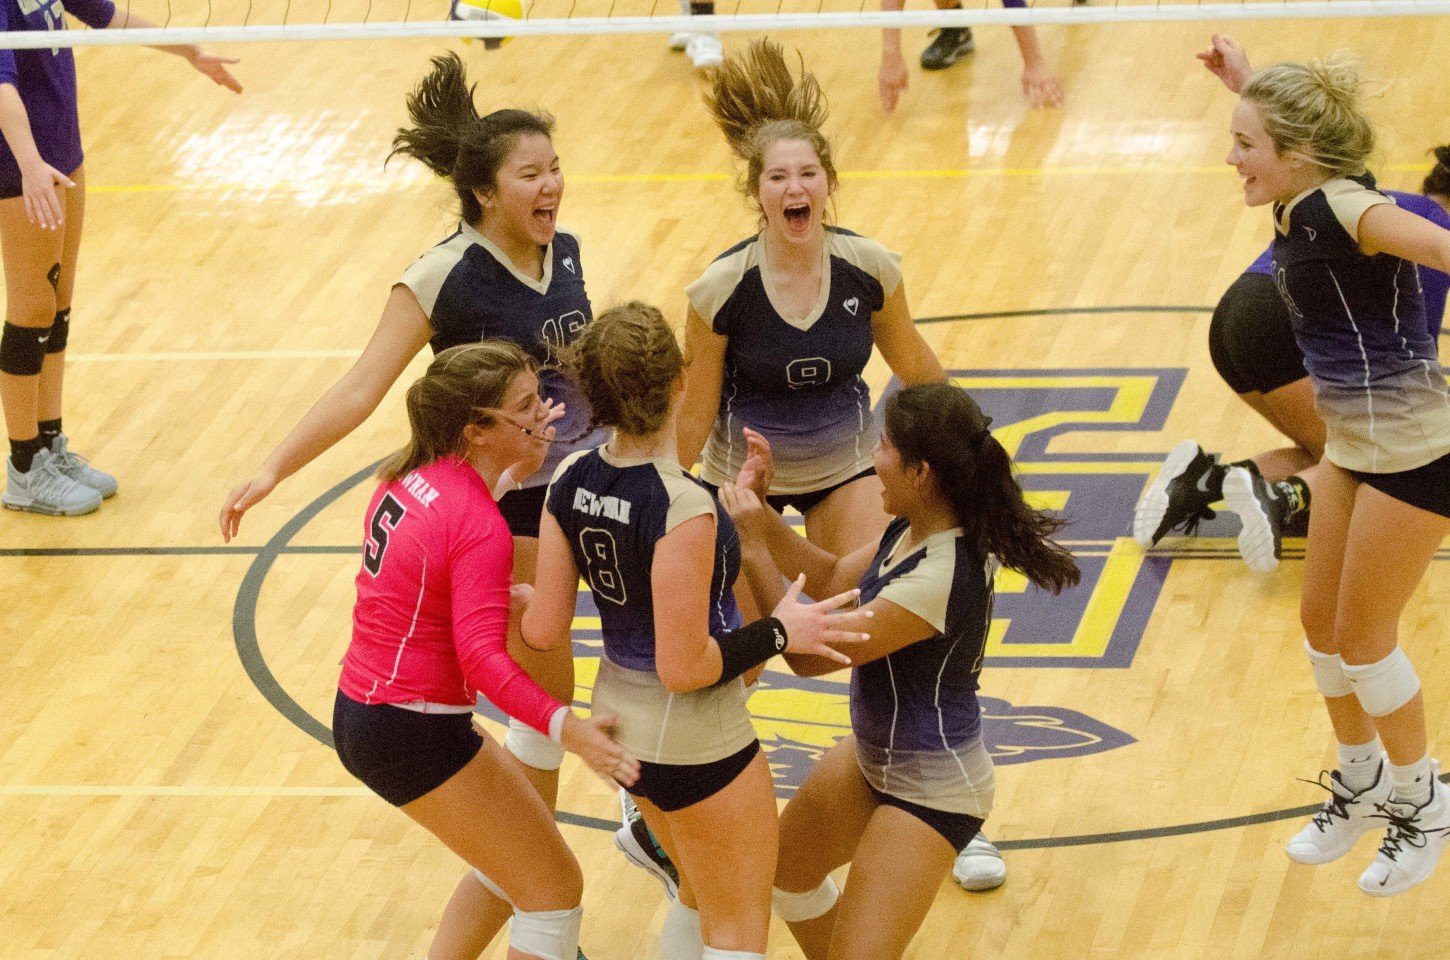 Newnan's JV celebrates the final point of a hard-fought sweep of host East Coweta.